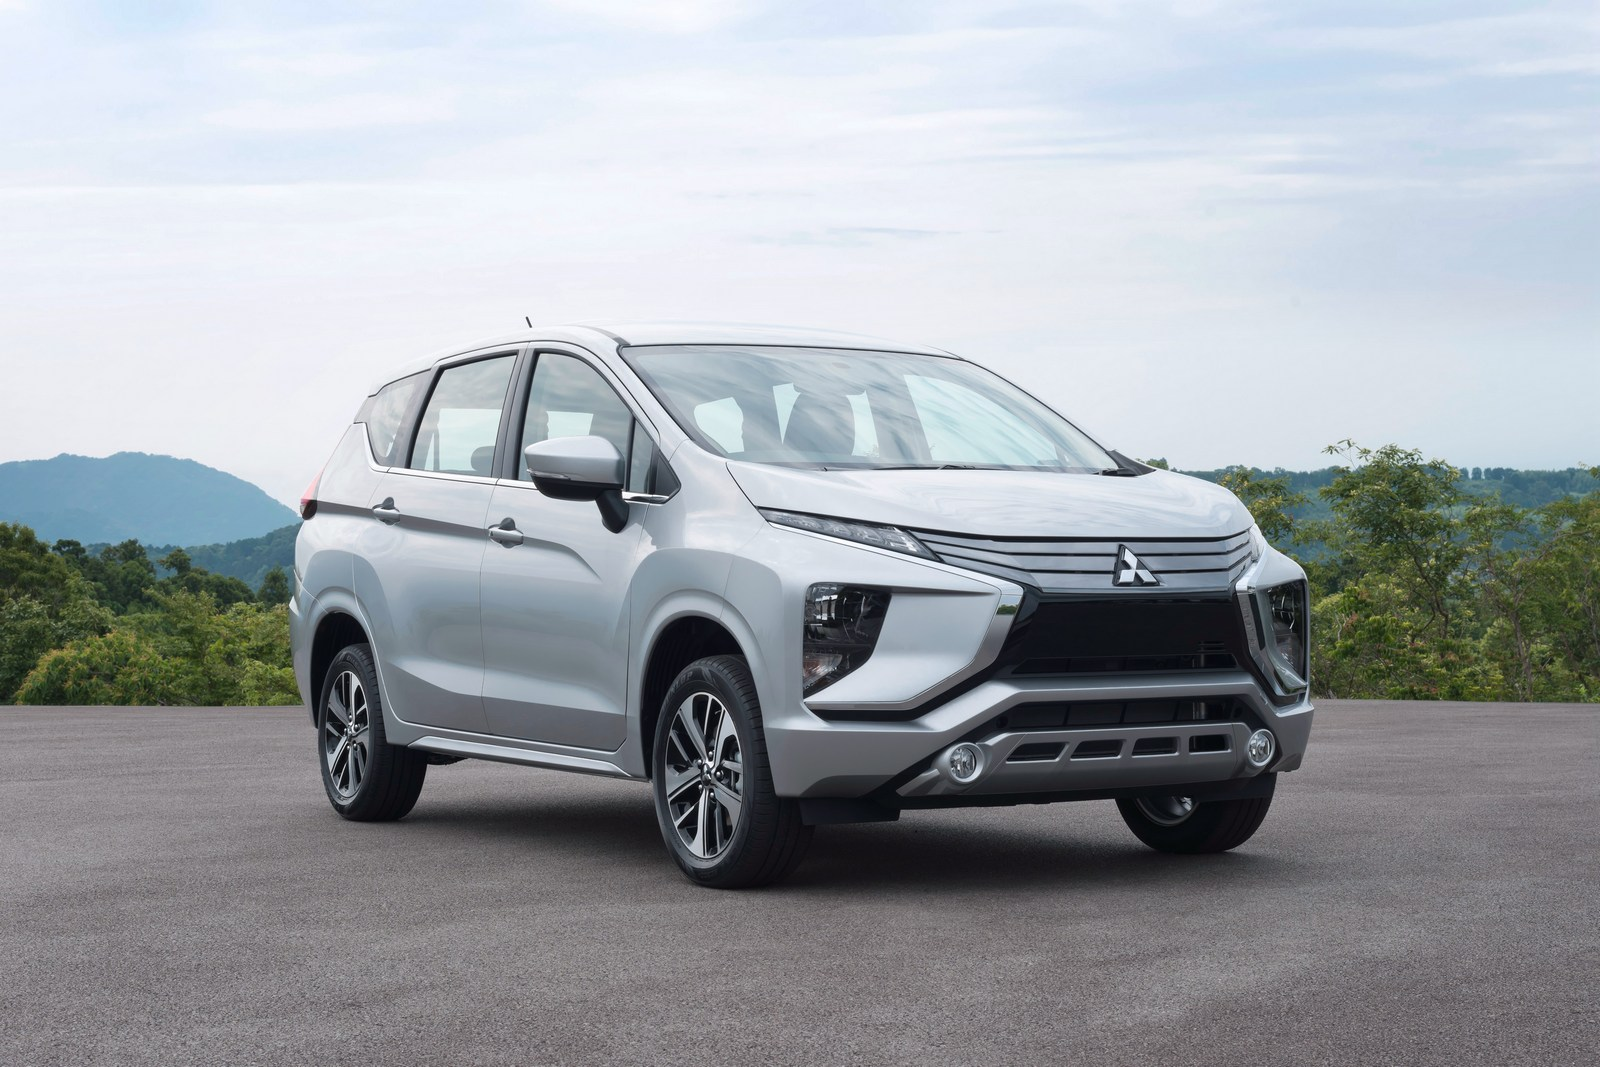 2019 Mitsubishi Montero Design, Price >> All-New Mitsubishi Xpander Debuts In Indonesia | Carscoops